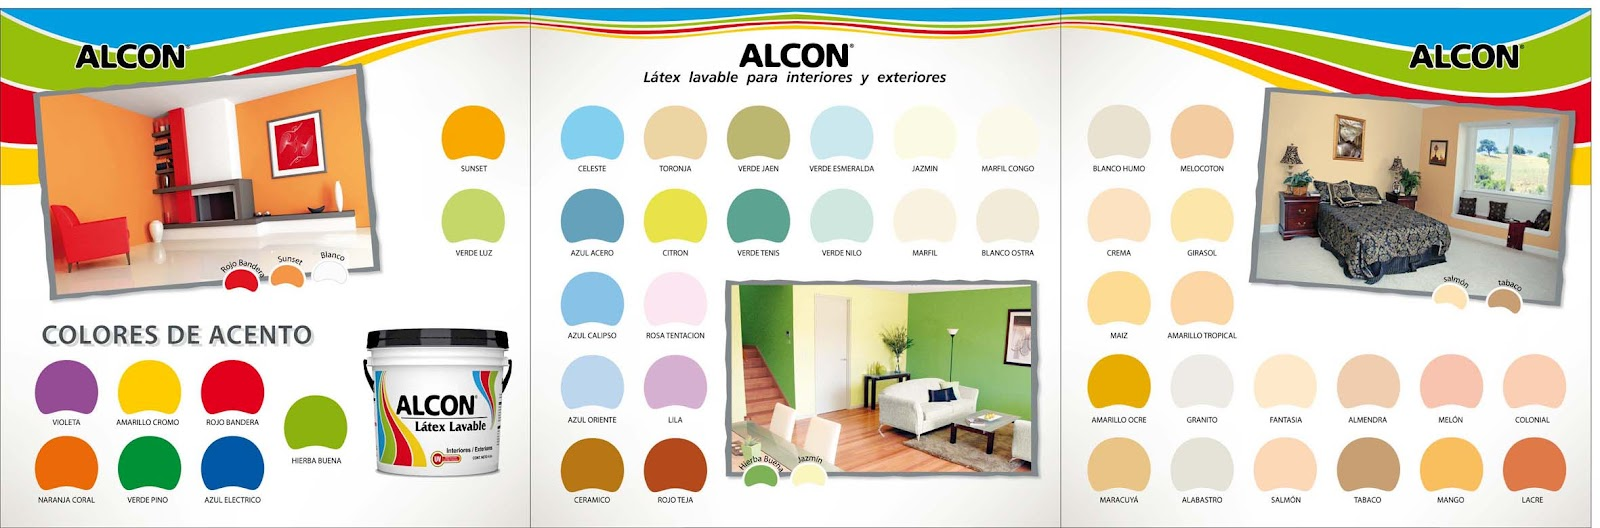 Catalogo de colores pinturas alcon arte dise o y for Catalogo pinturas bruguer